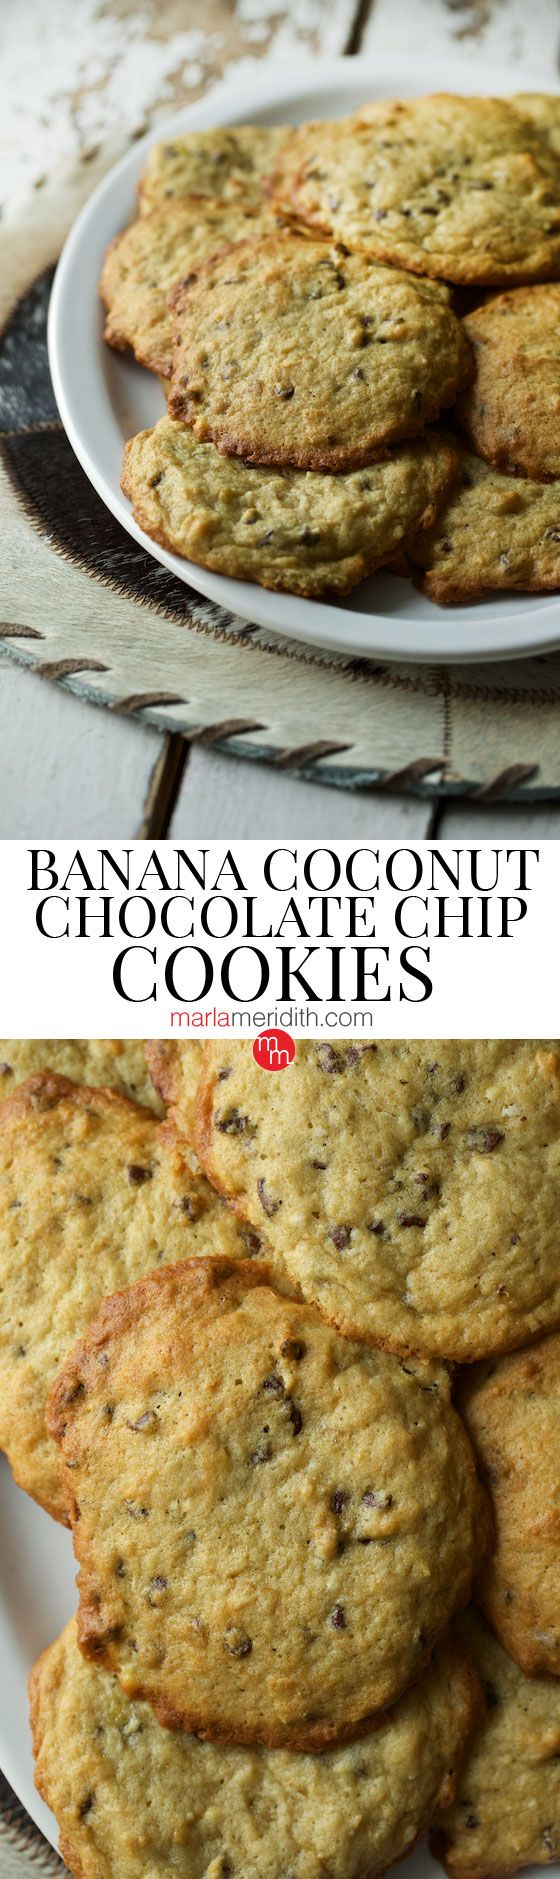 Banana Coconut & Chocolate Chip Cookies, find this #recipe & many more on MarlaMeridith.com ( @marlameridith )